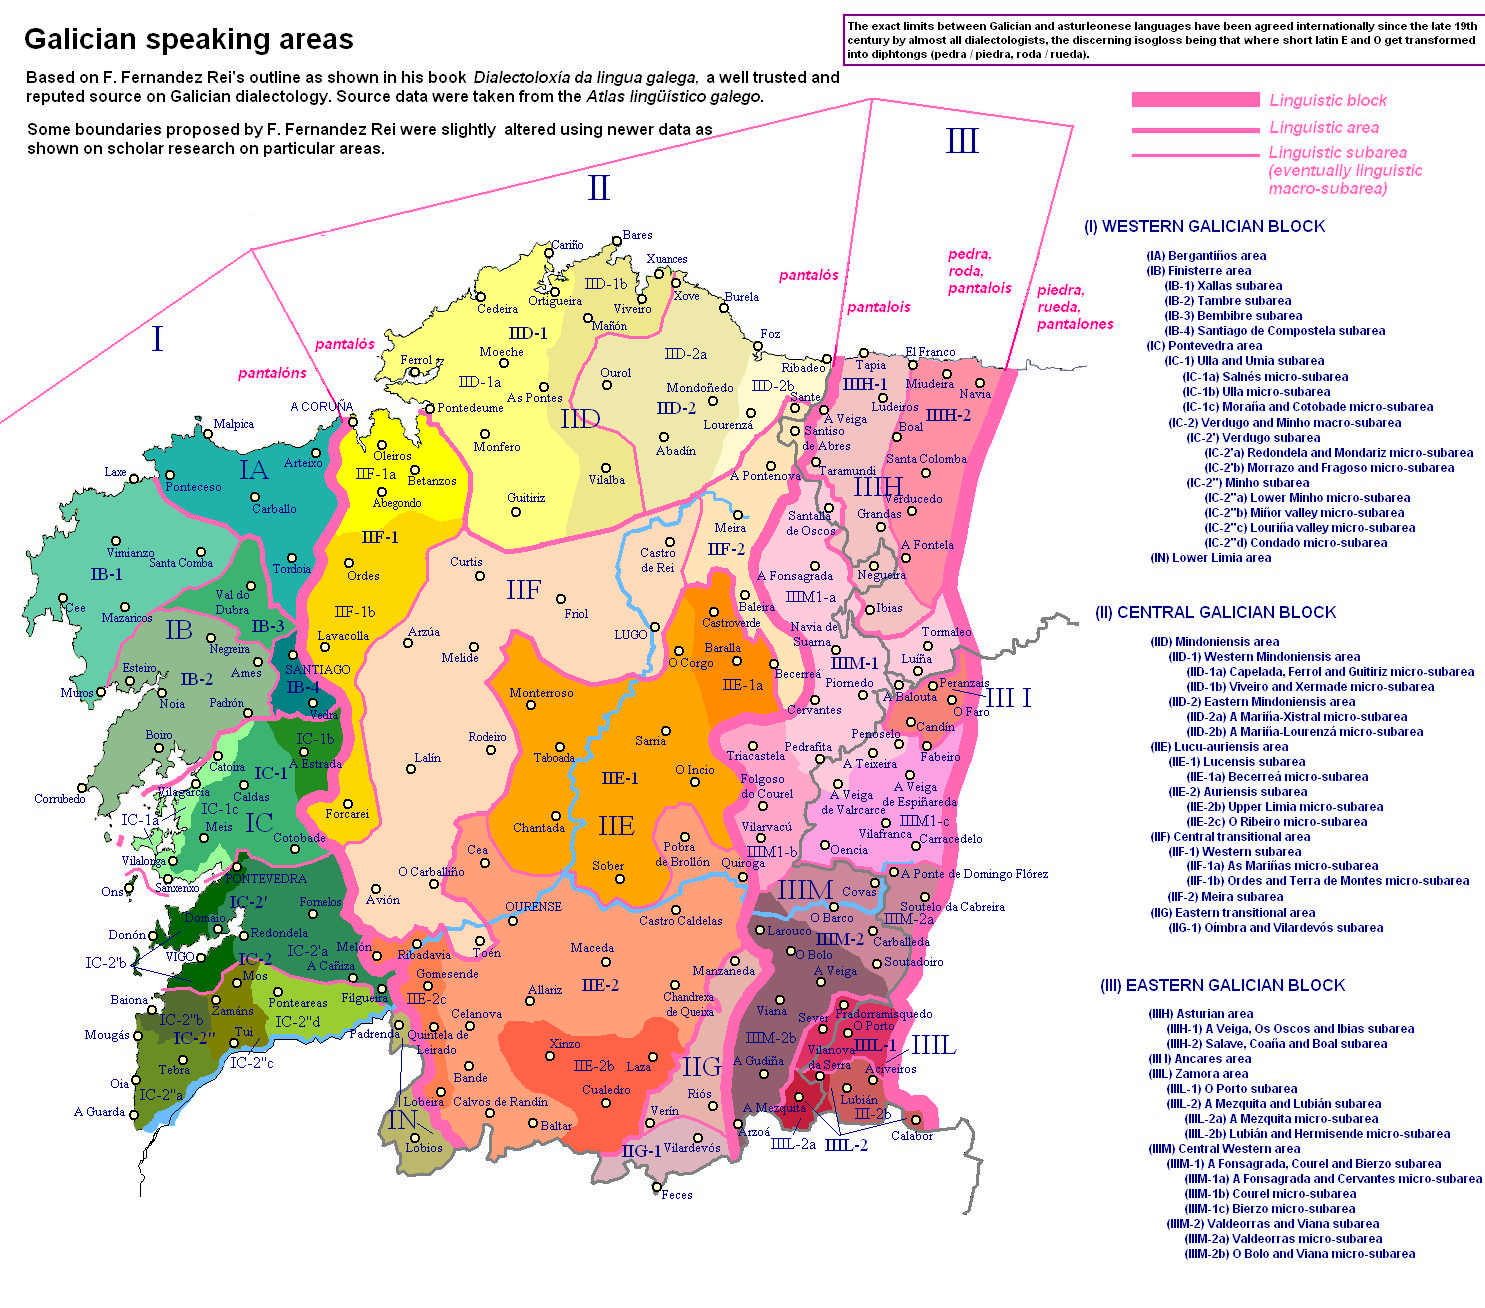 Galician language linguistic areas 2008